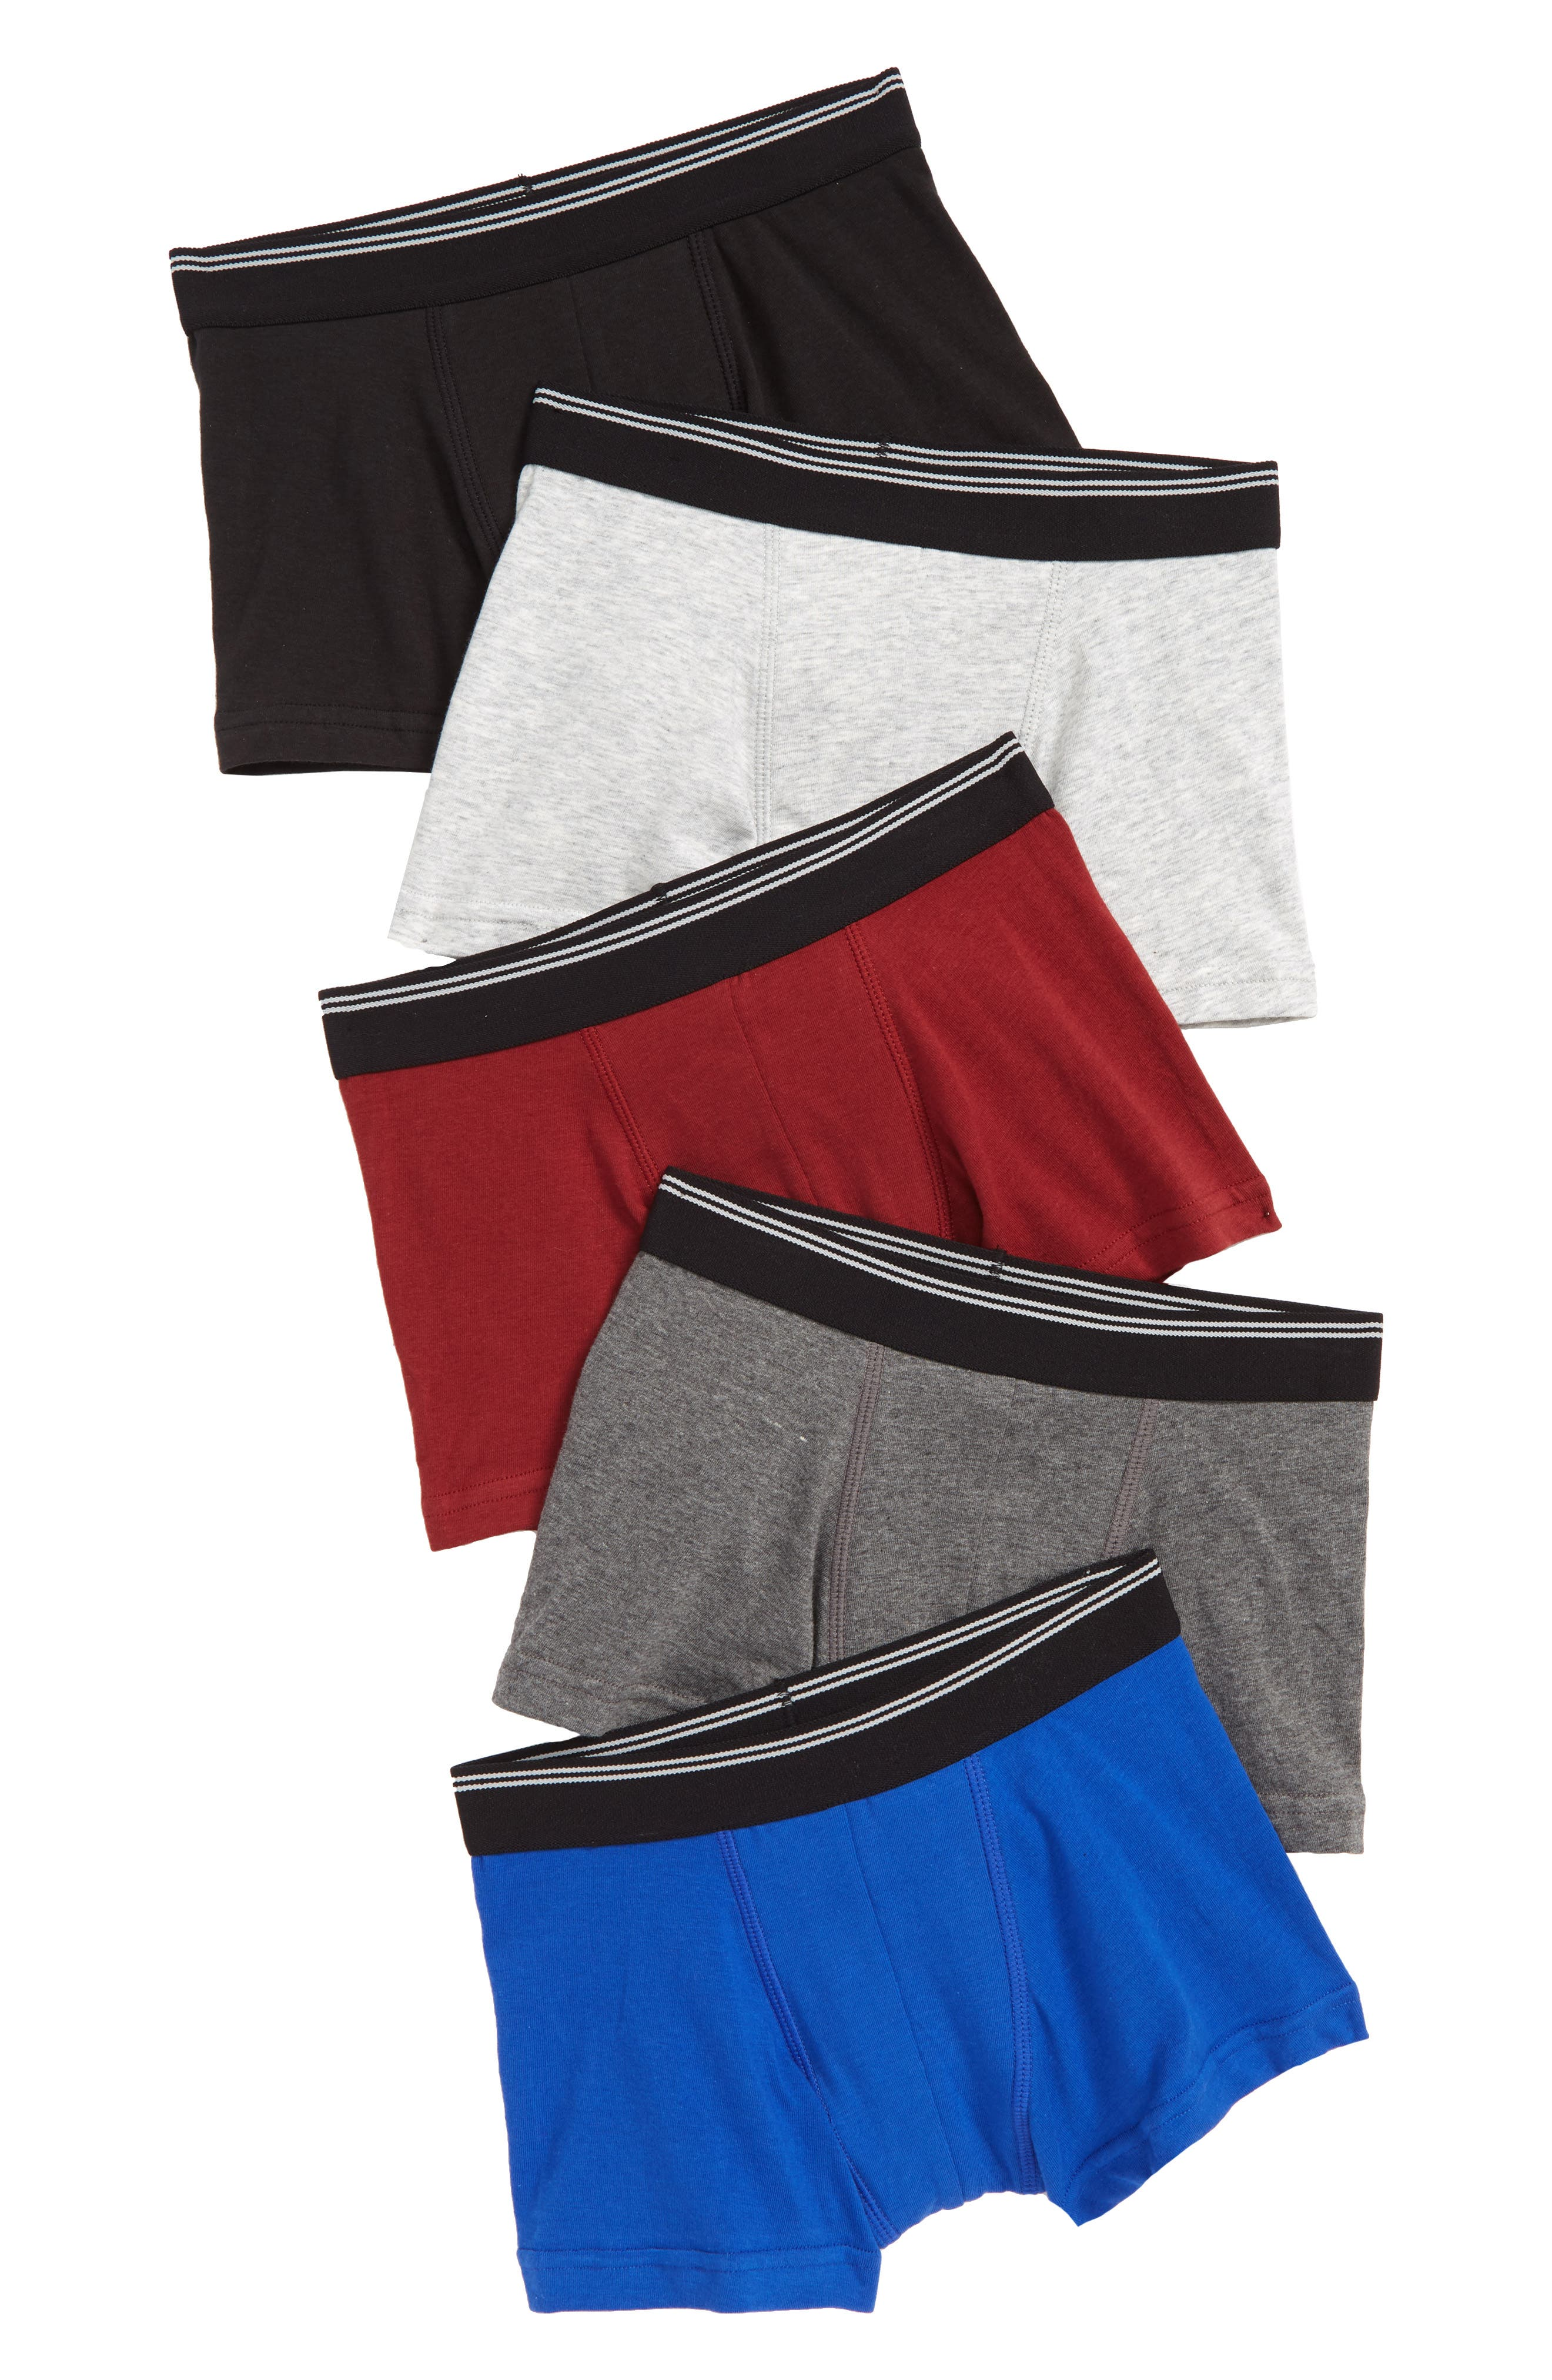 5-Pack Trunks,                         Main,                         color, SOLID PACK